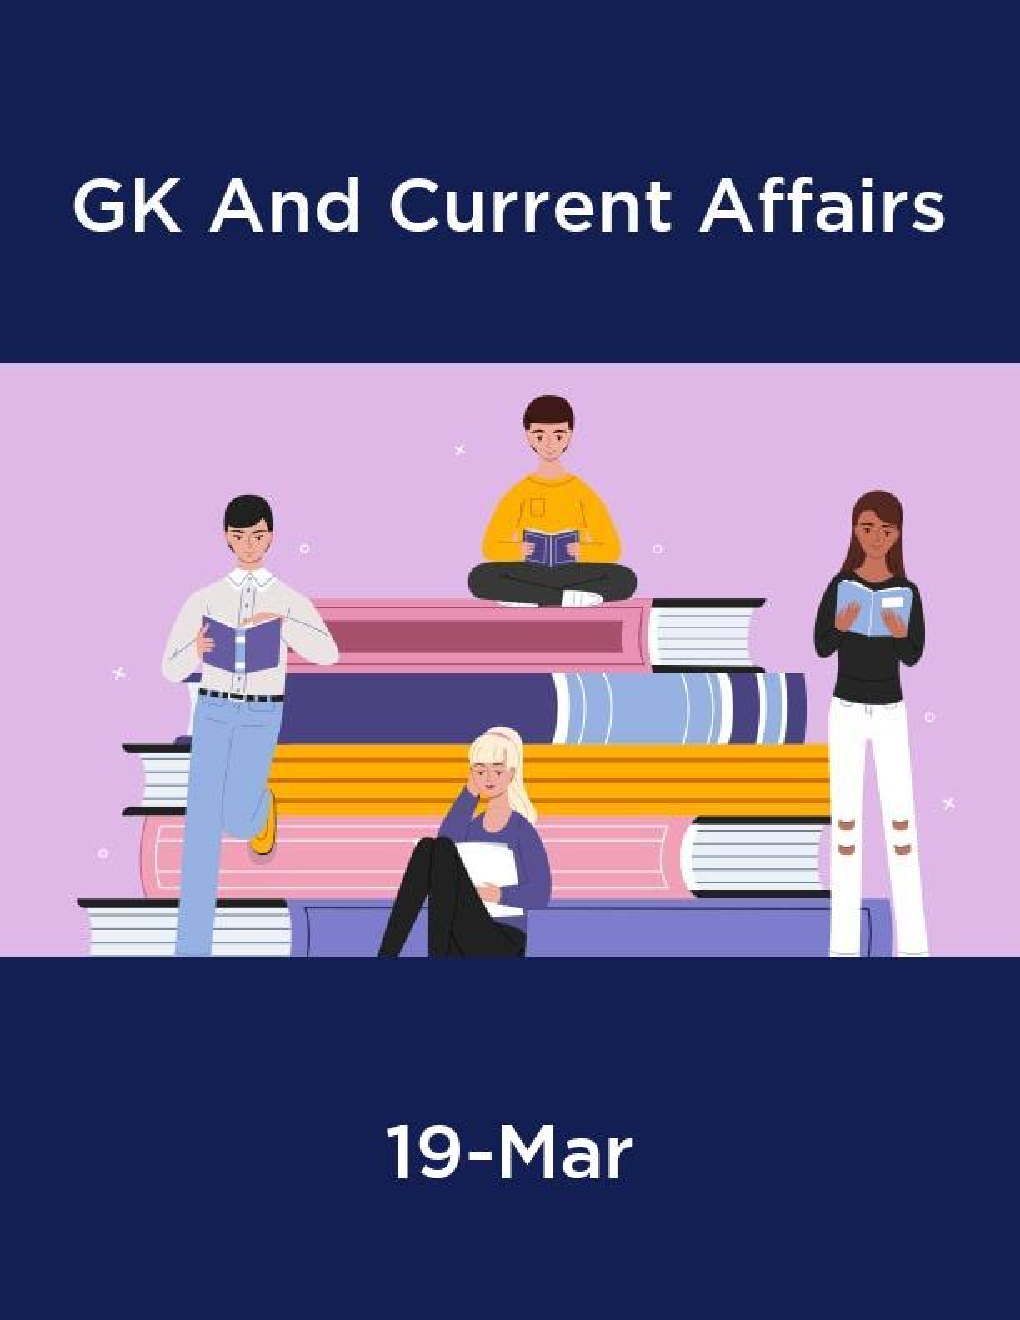 GK And Current Affairs March 2019 - Page 1